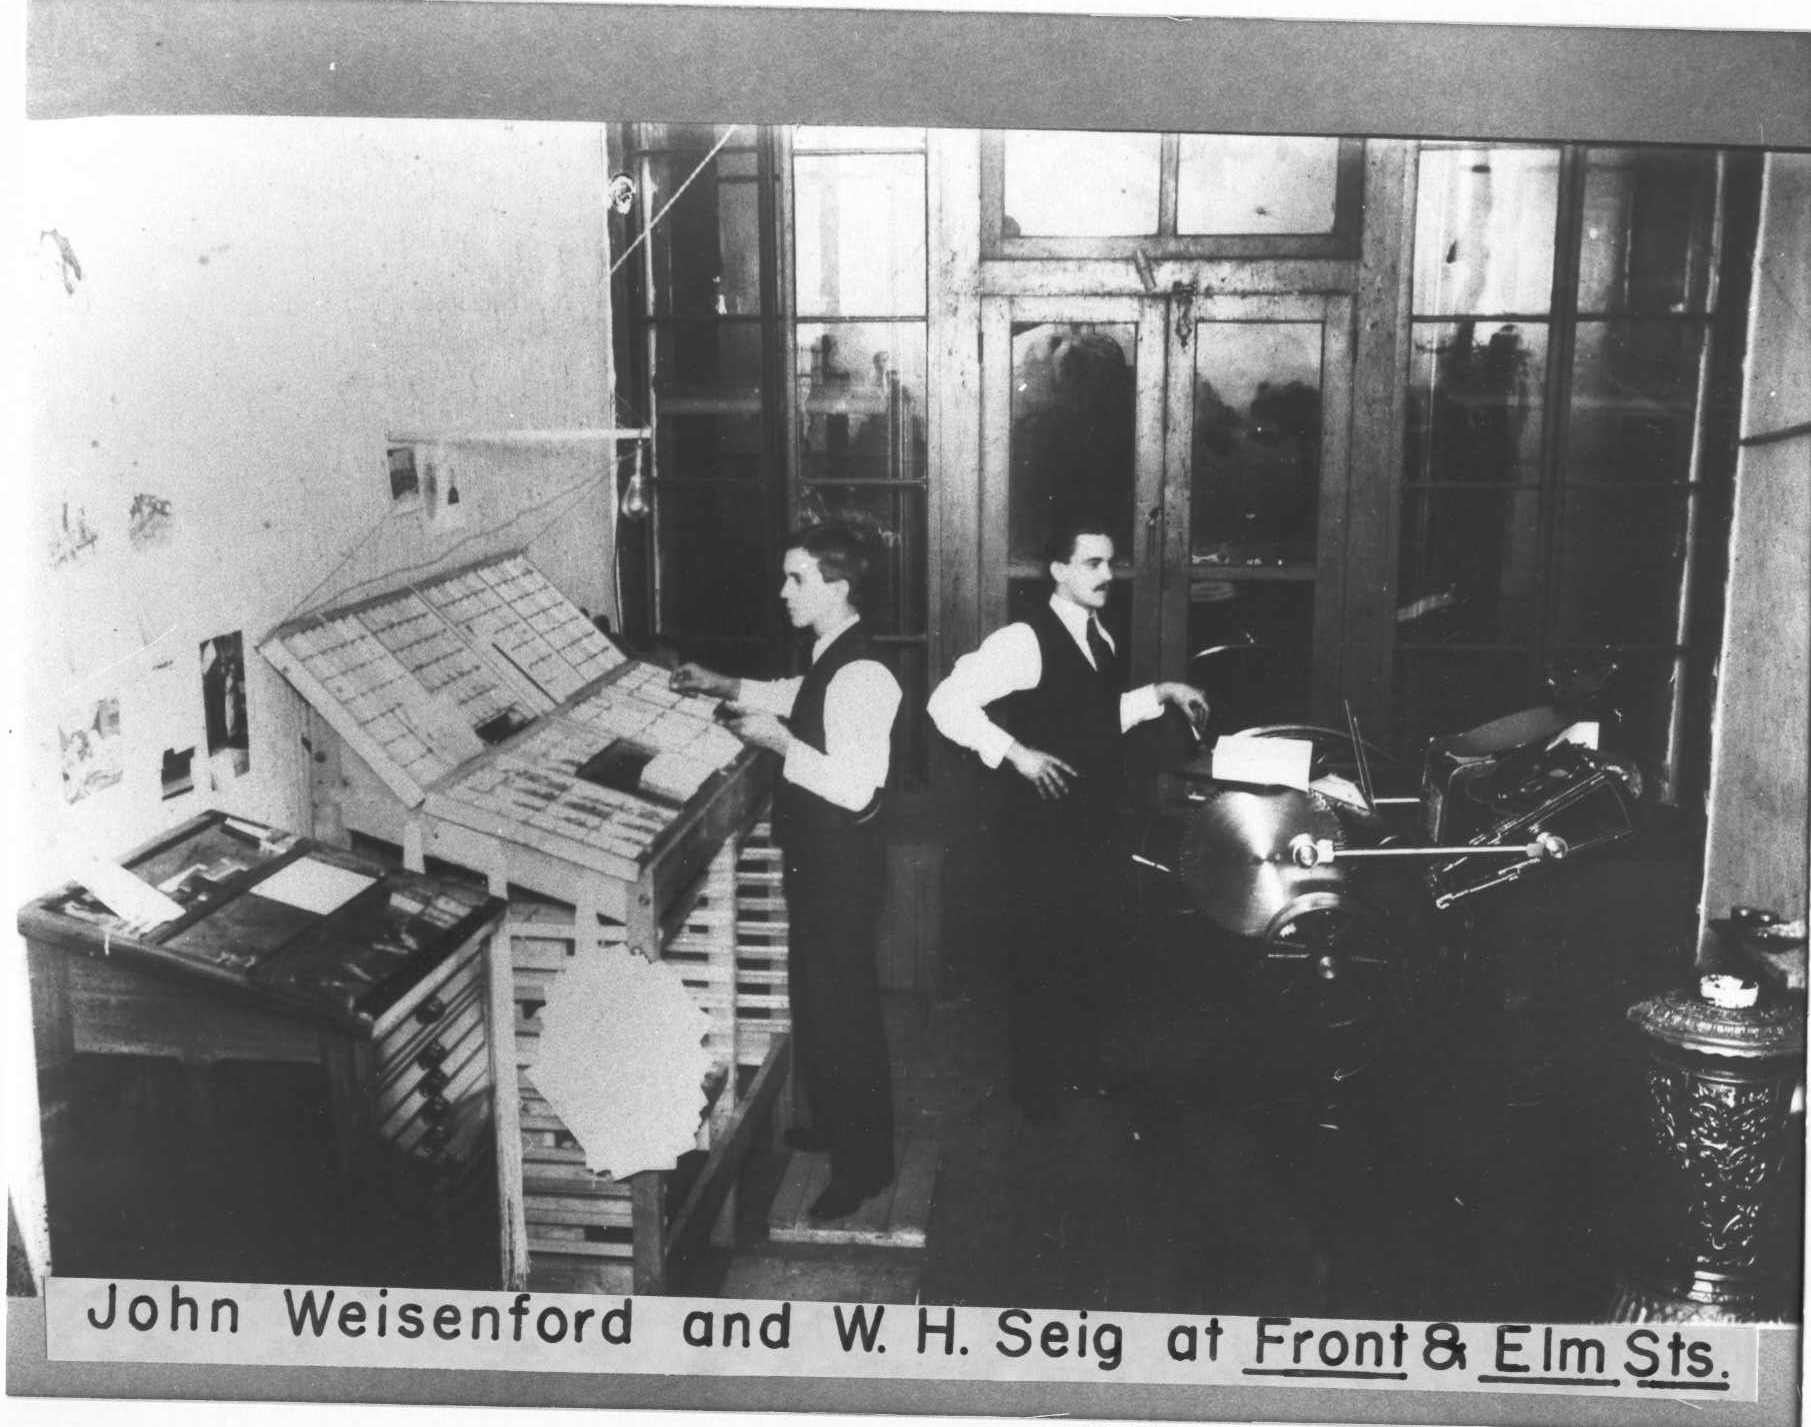 John Weisenford and W.H. Seig